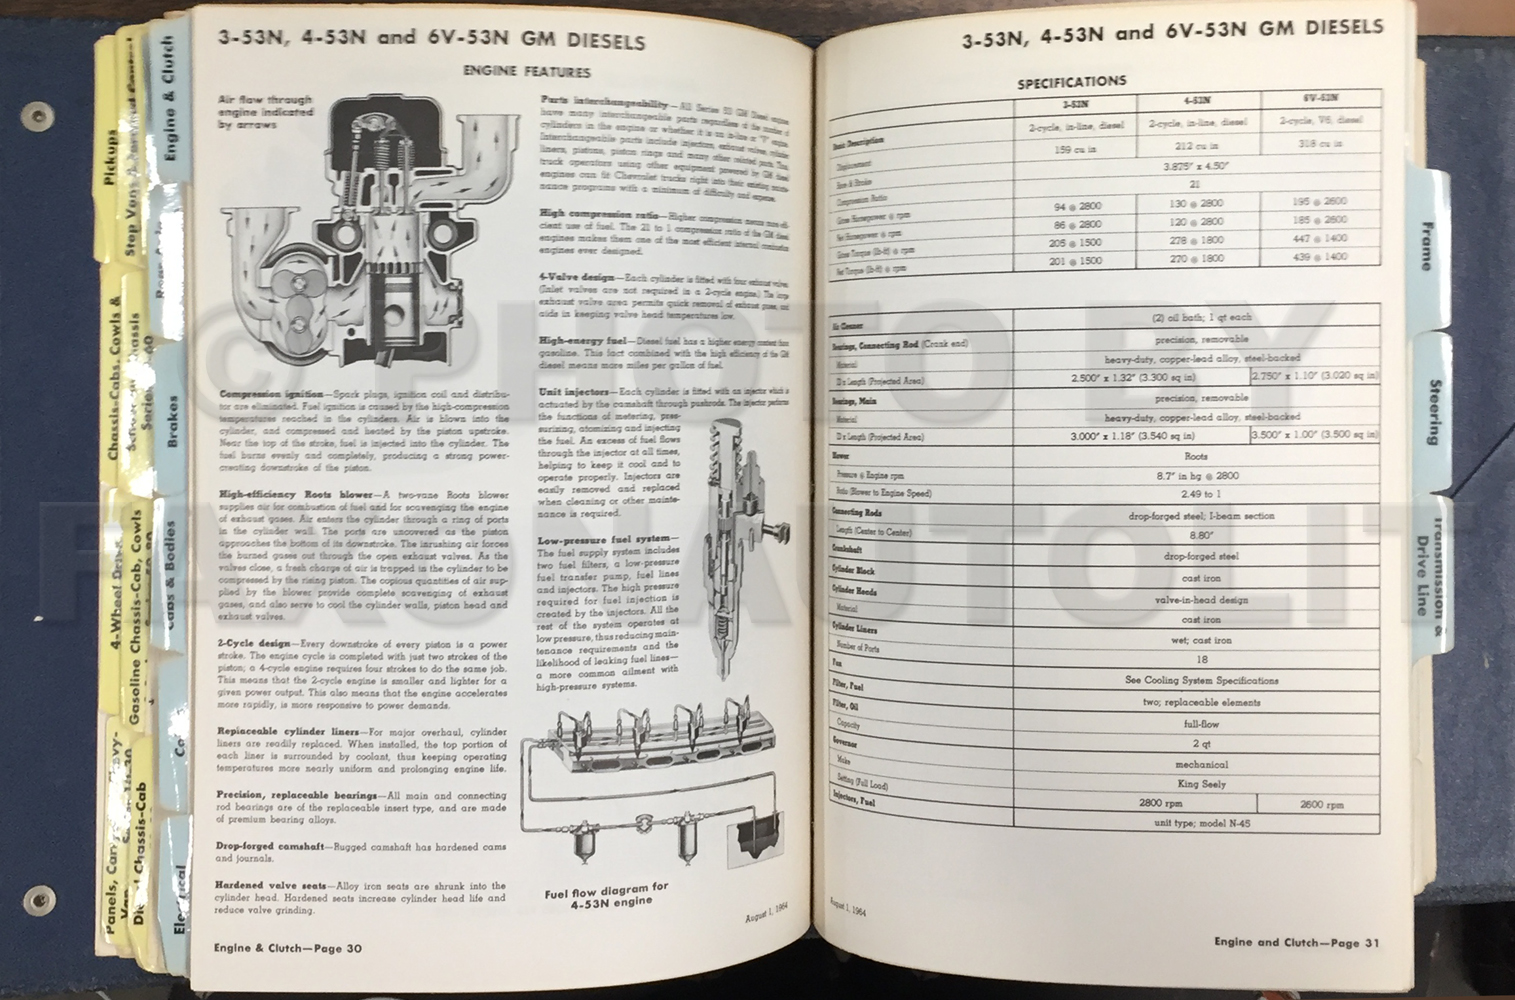 1965 Chevrolet Truck Data Book Original. click on thumbnail to zoom